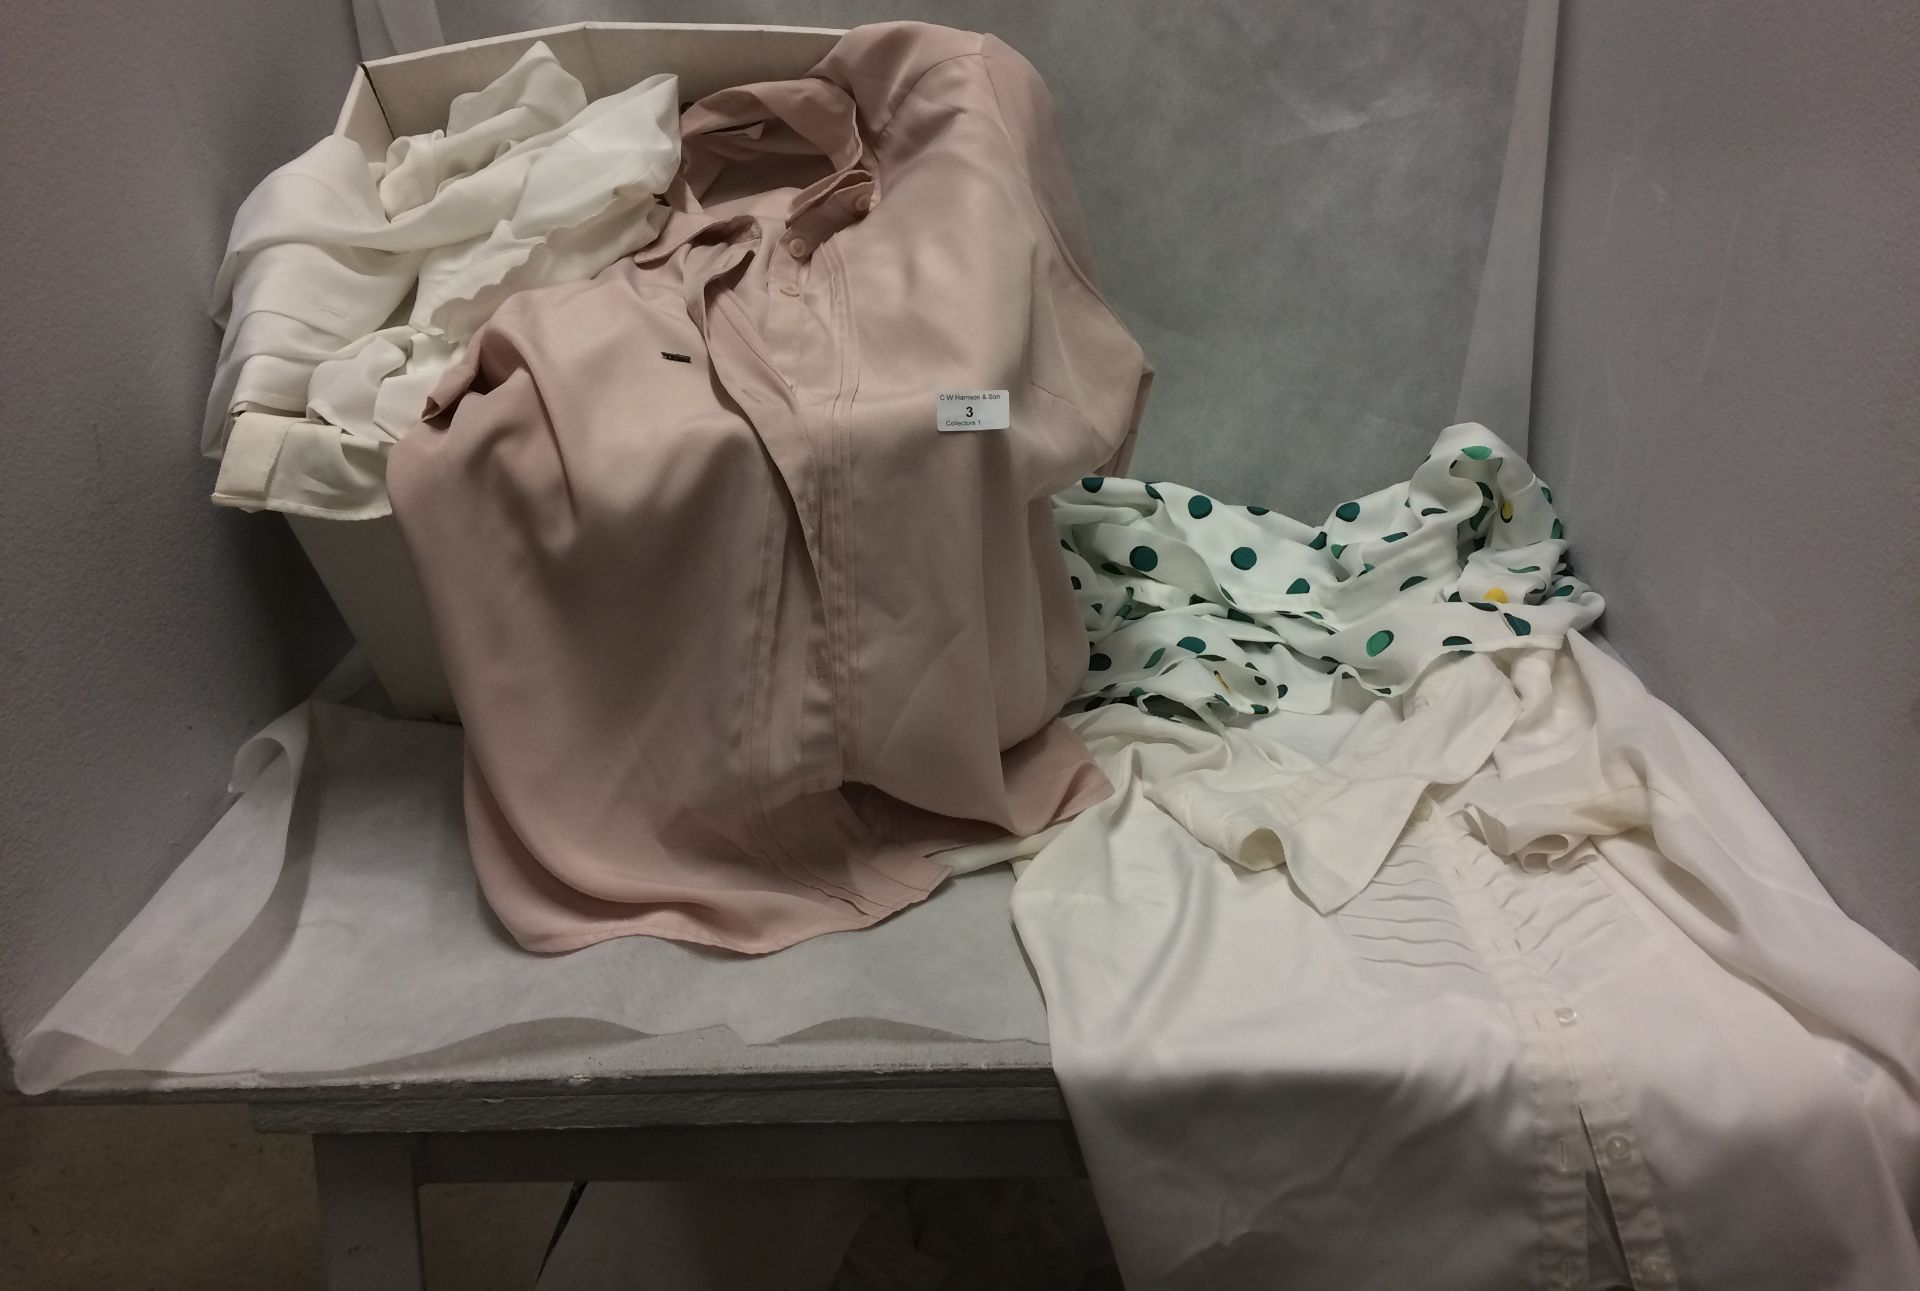 Contents to box - 20 x ladies blouses sizes 16 - 20 by M & S and Autograph (clean but not new)